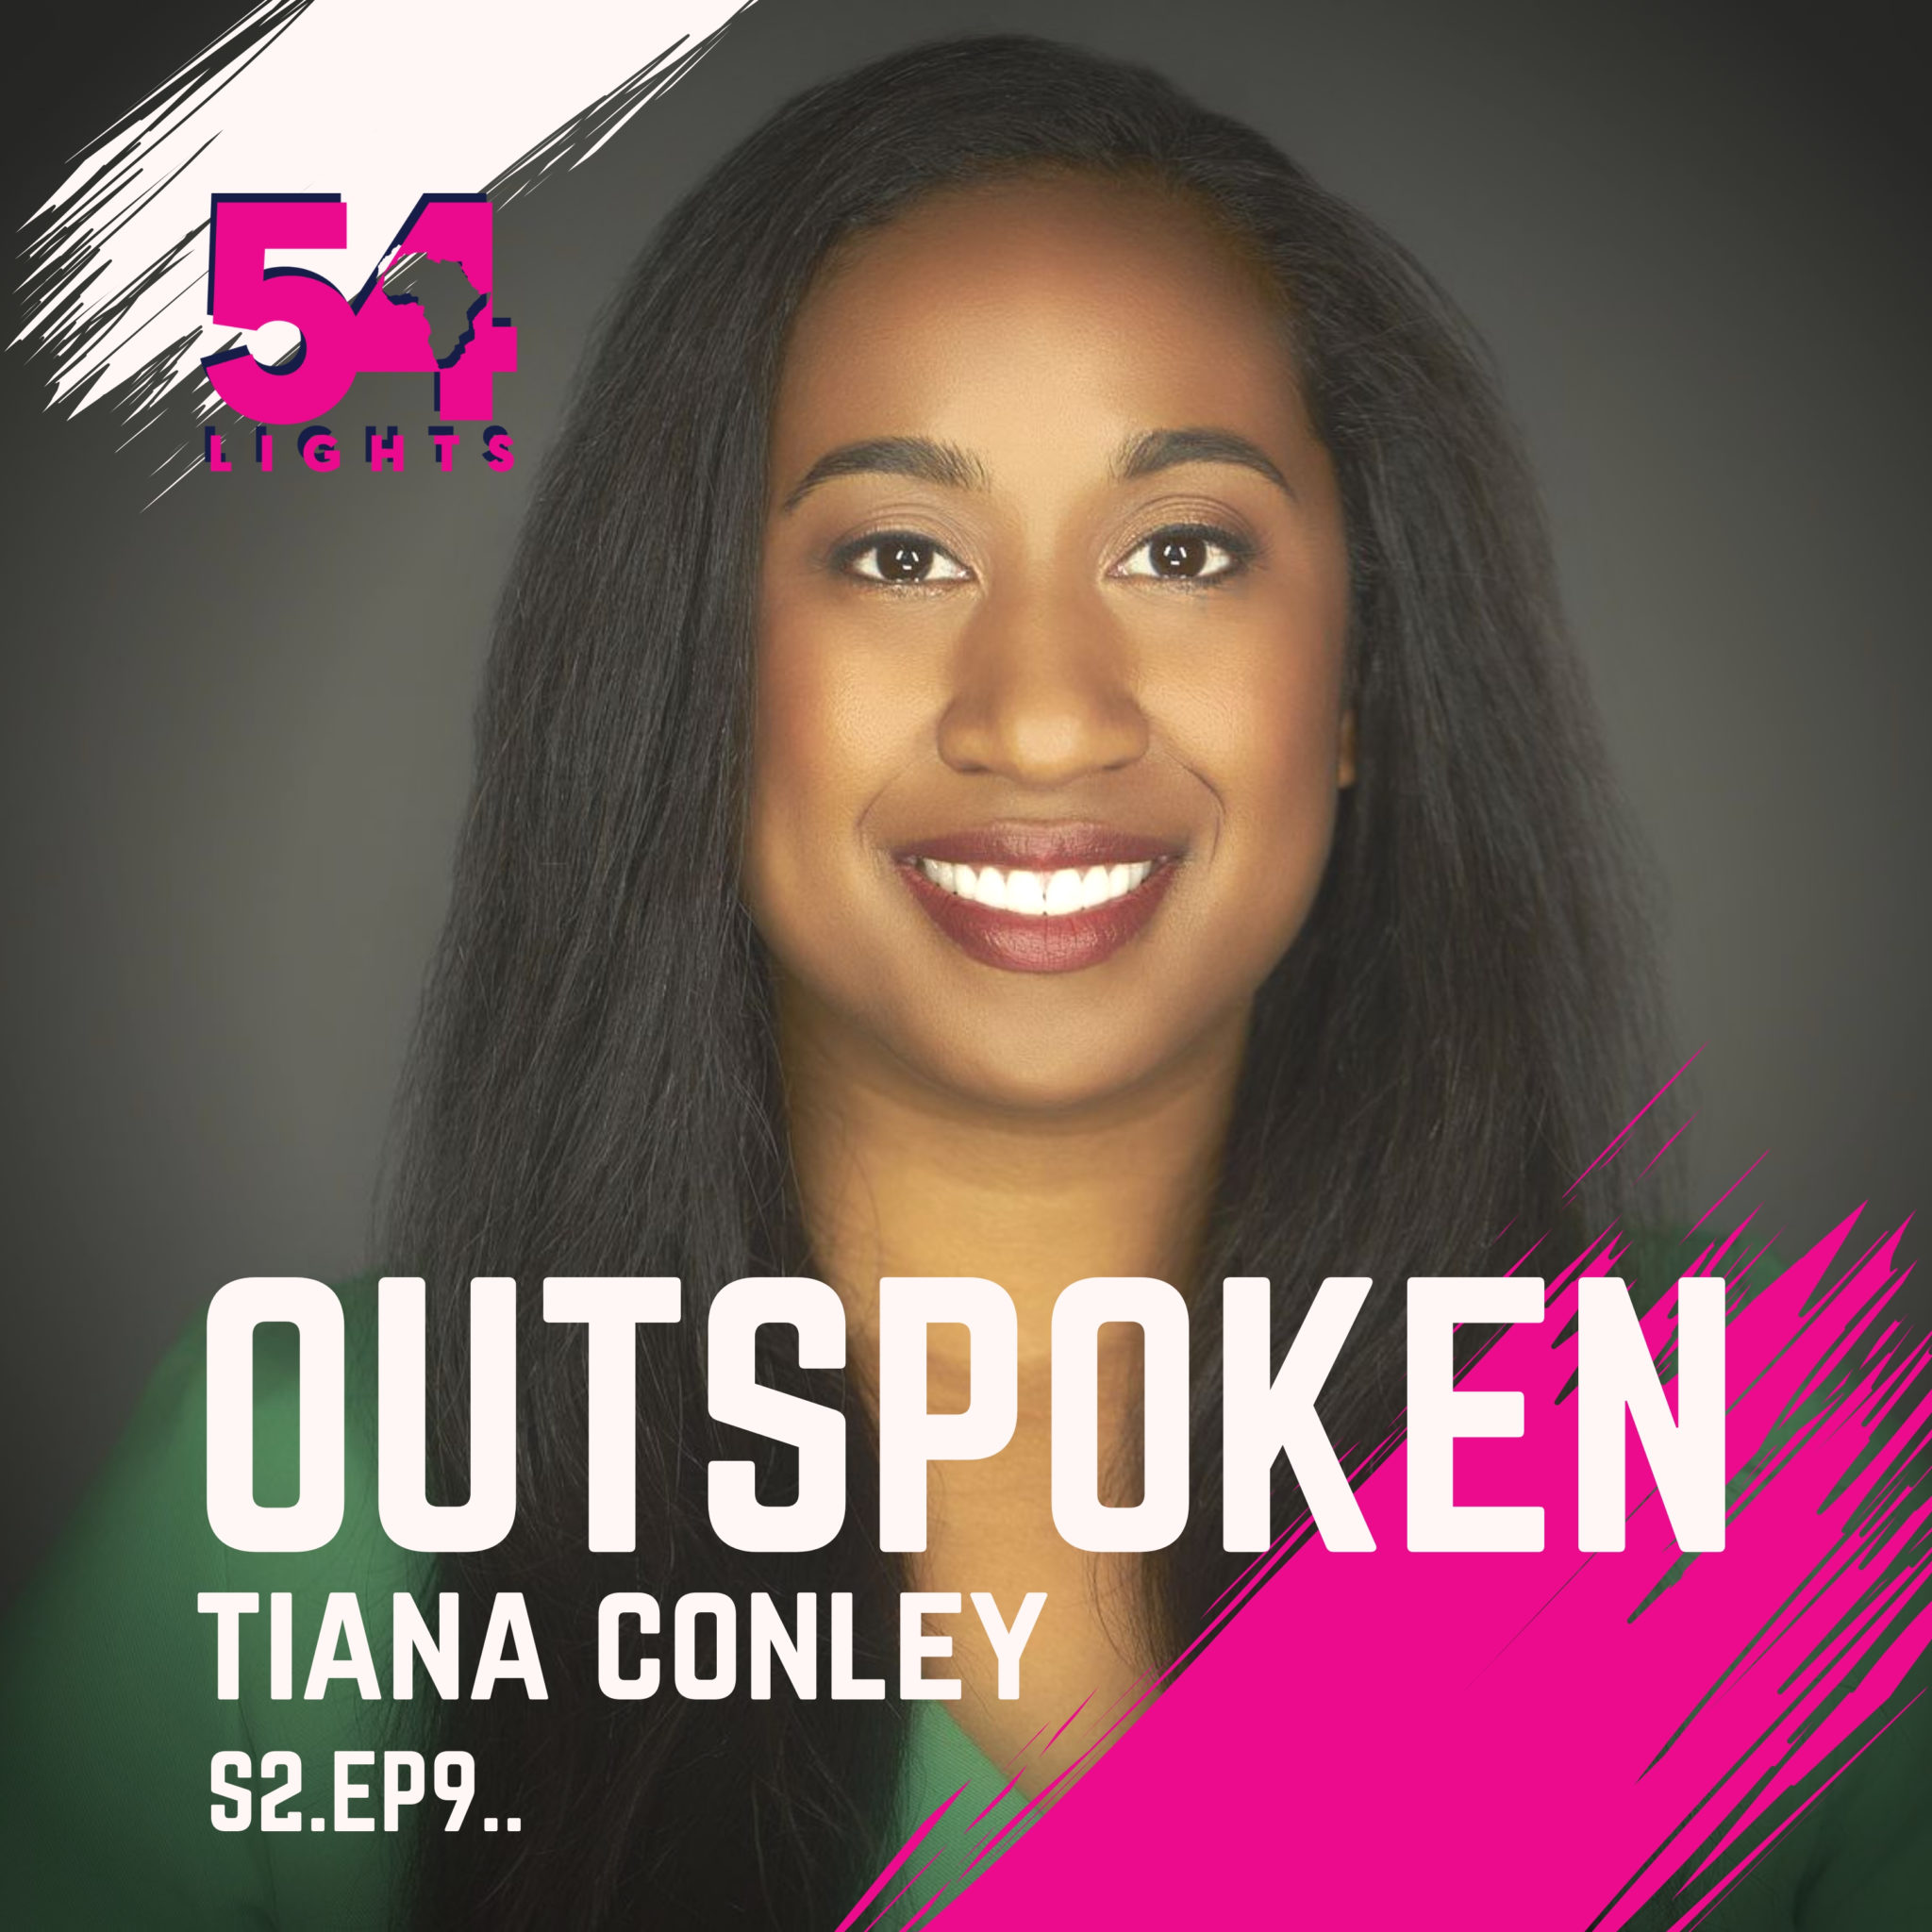 Outspoken with Tiana Conley